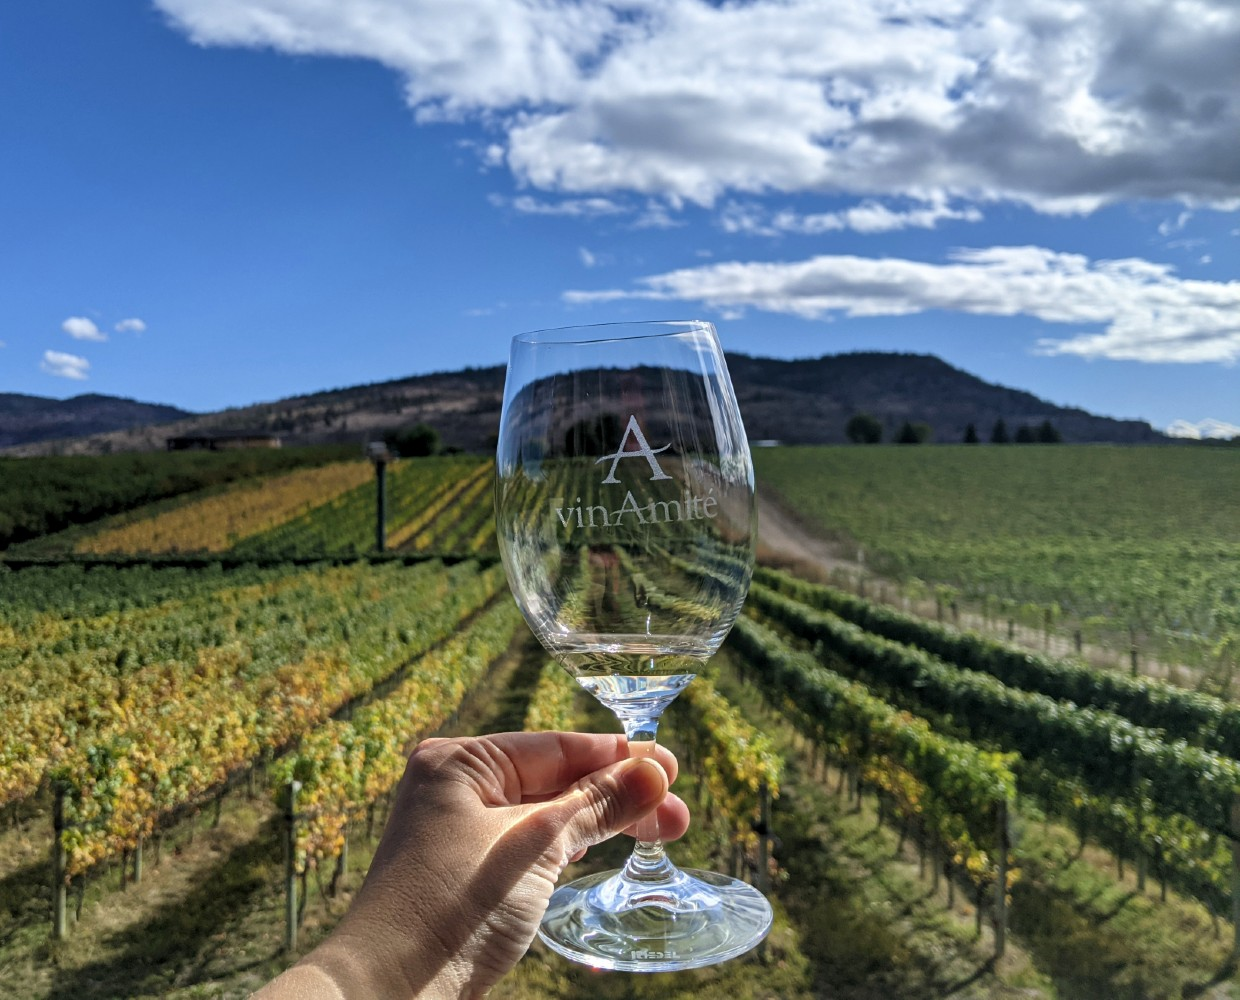 A hand holds up a VinAmité branded wine glass in front of yellowing vineyard